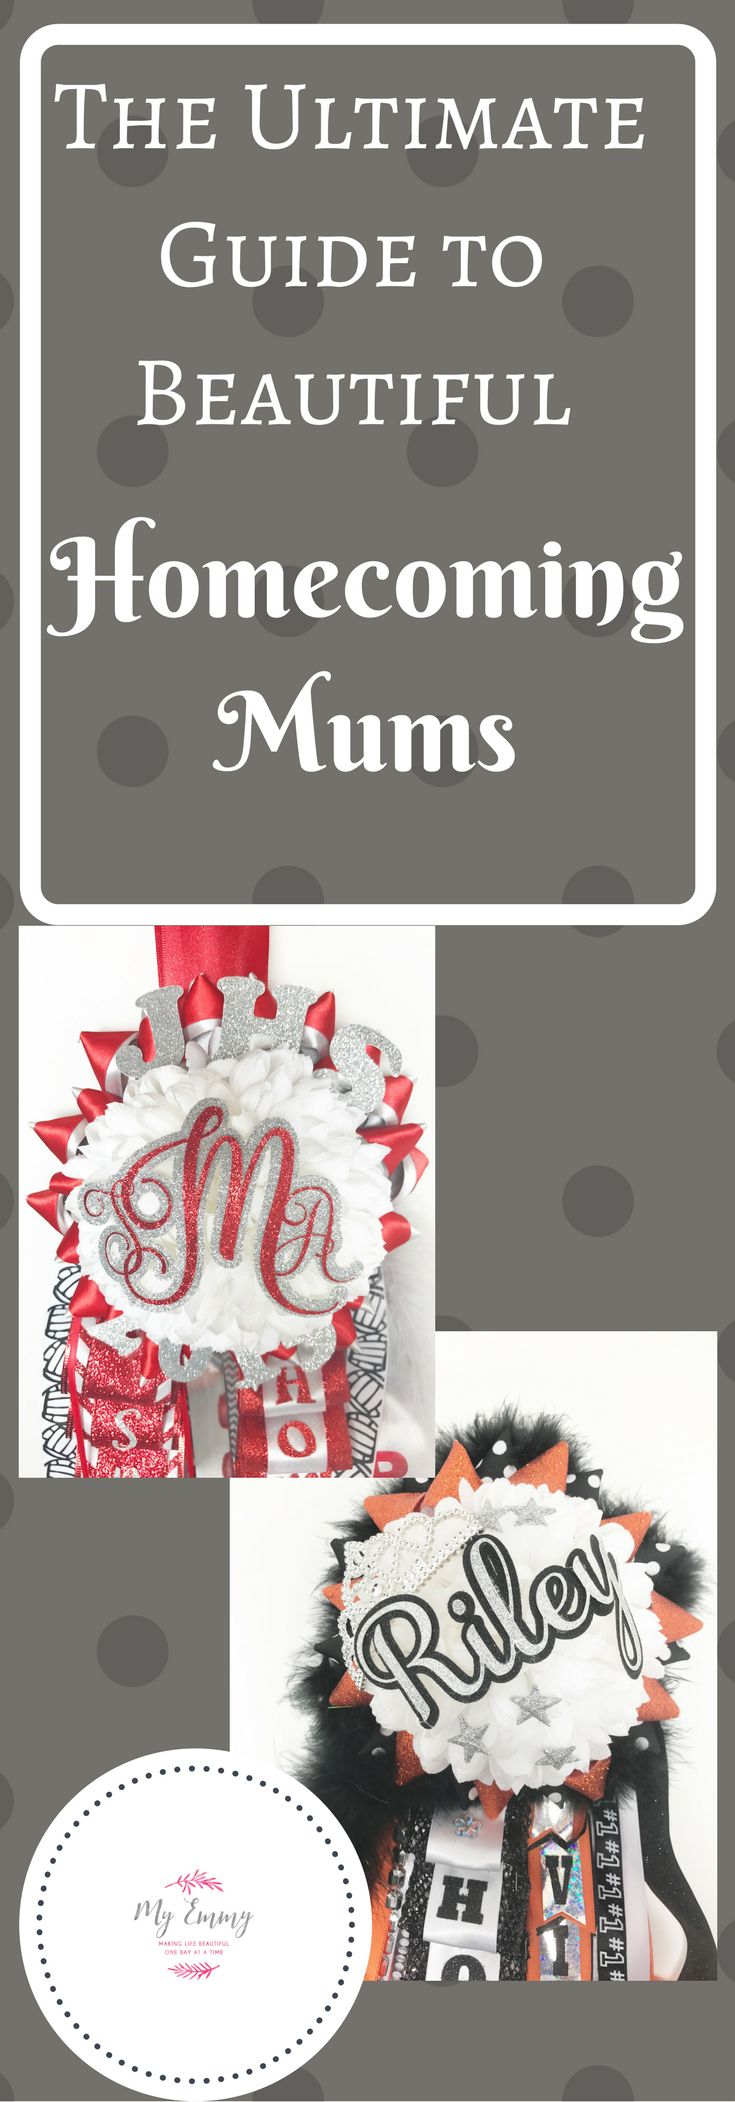 A fantastic guide to what you need to make your own homecoming mum along with beautiful pictures and ideas.